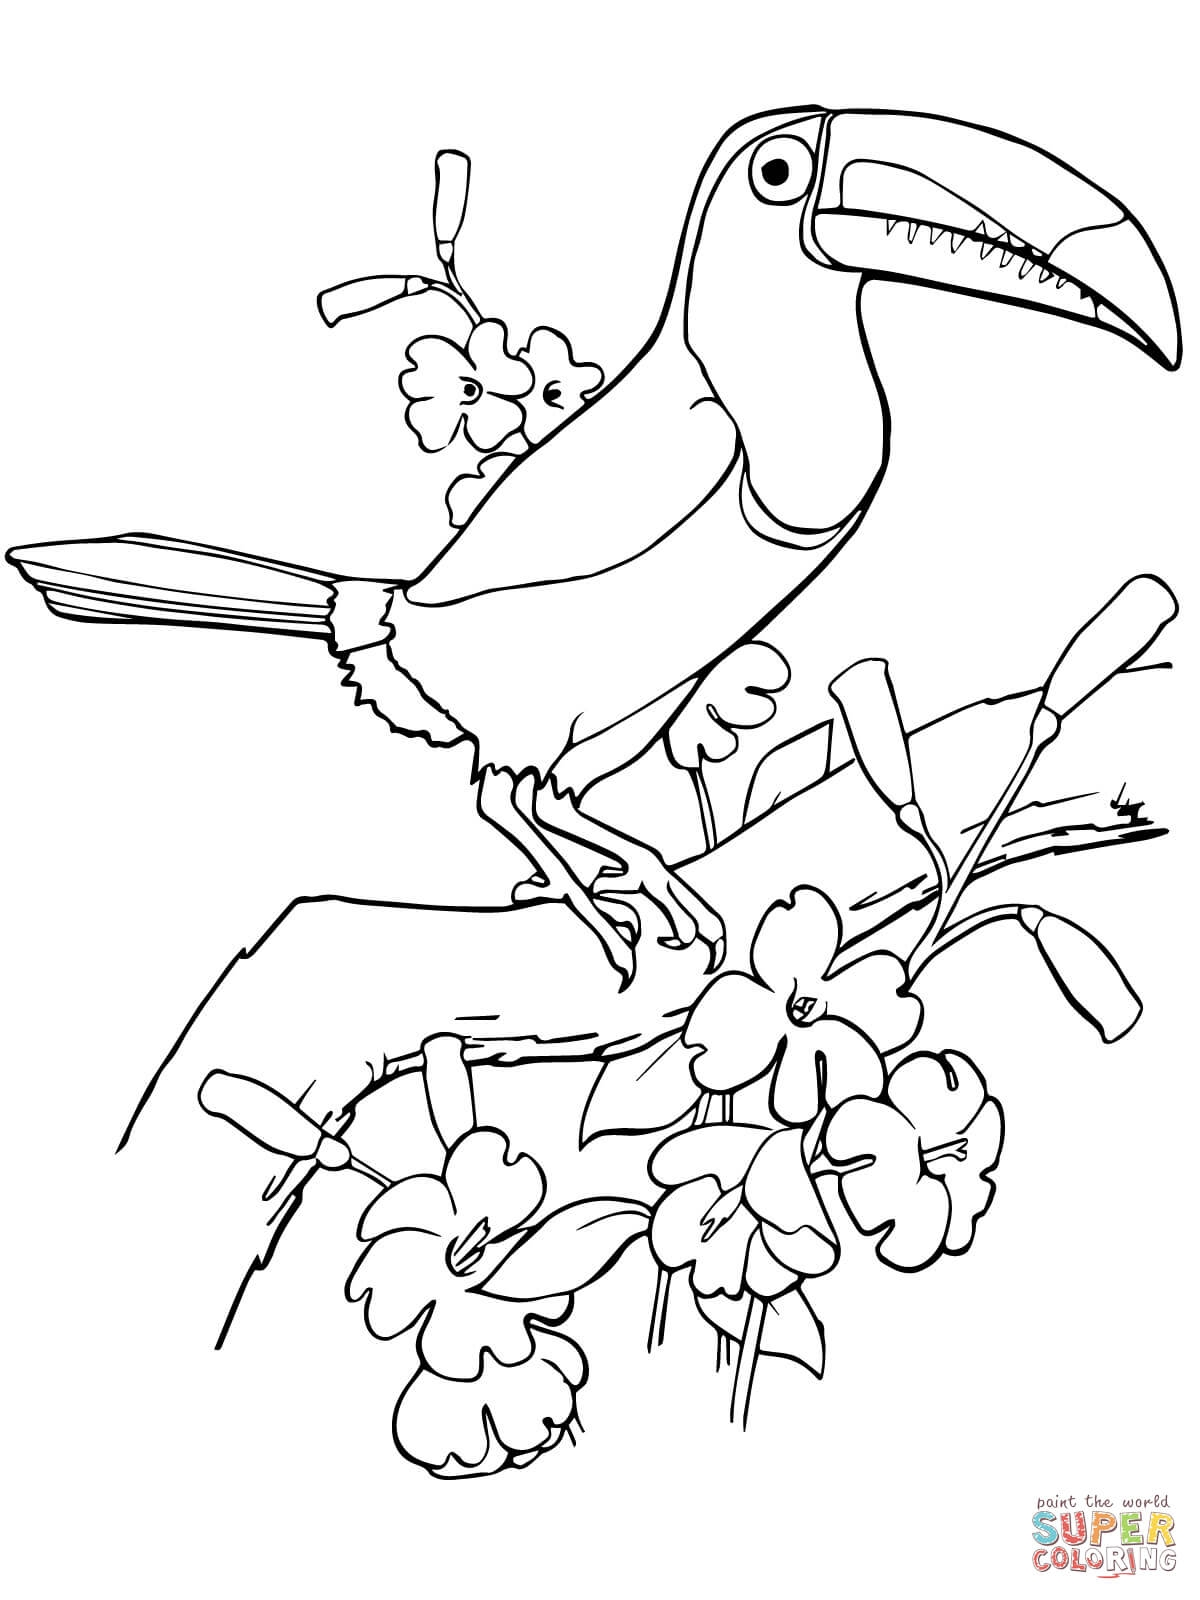 Tropical Bird Coloring Pages At Getcolorings